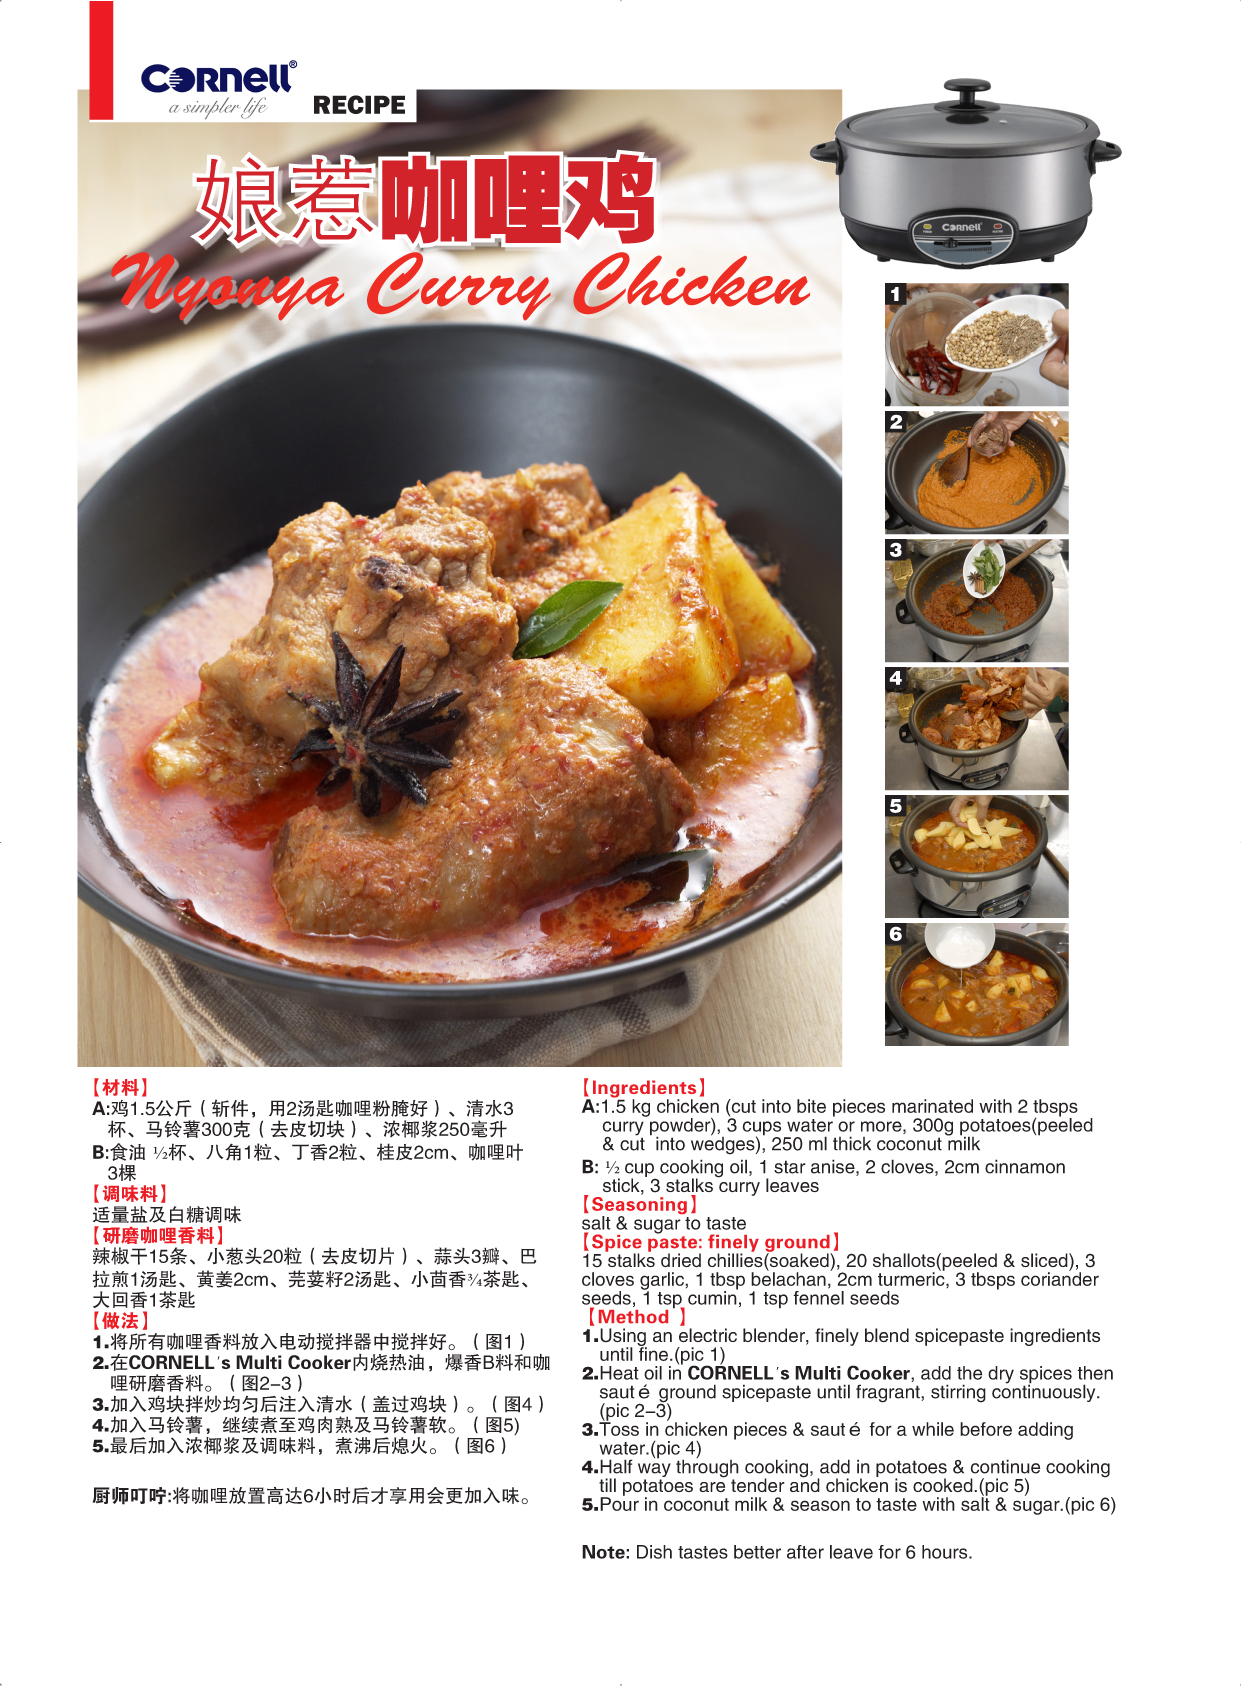 Nyonya Curry Chicken